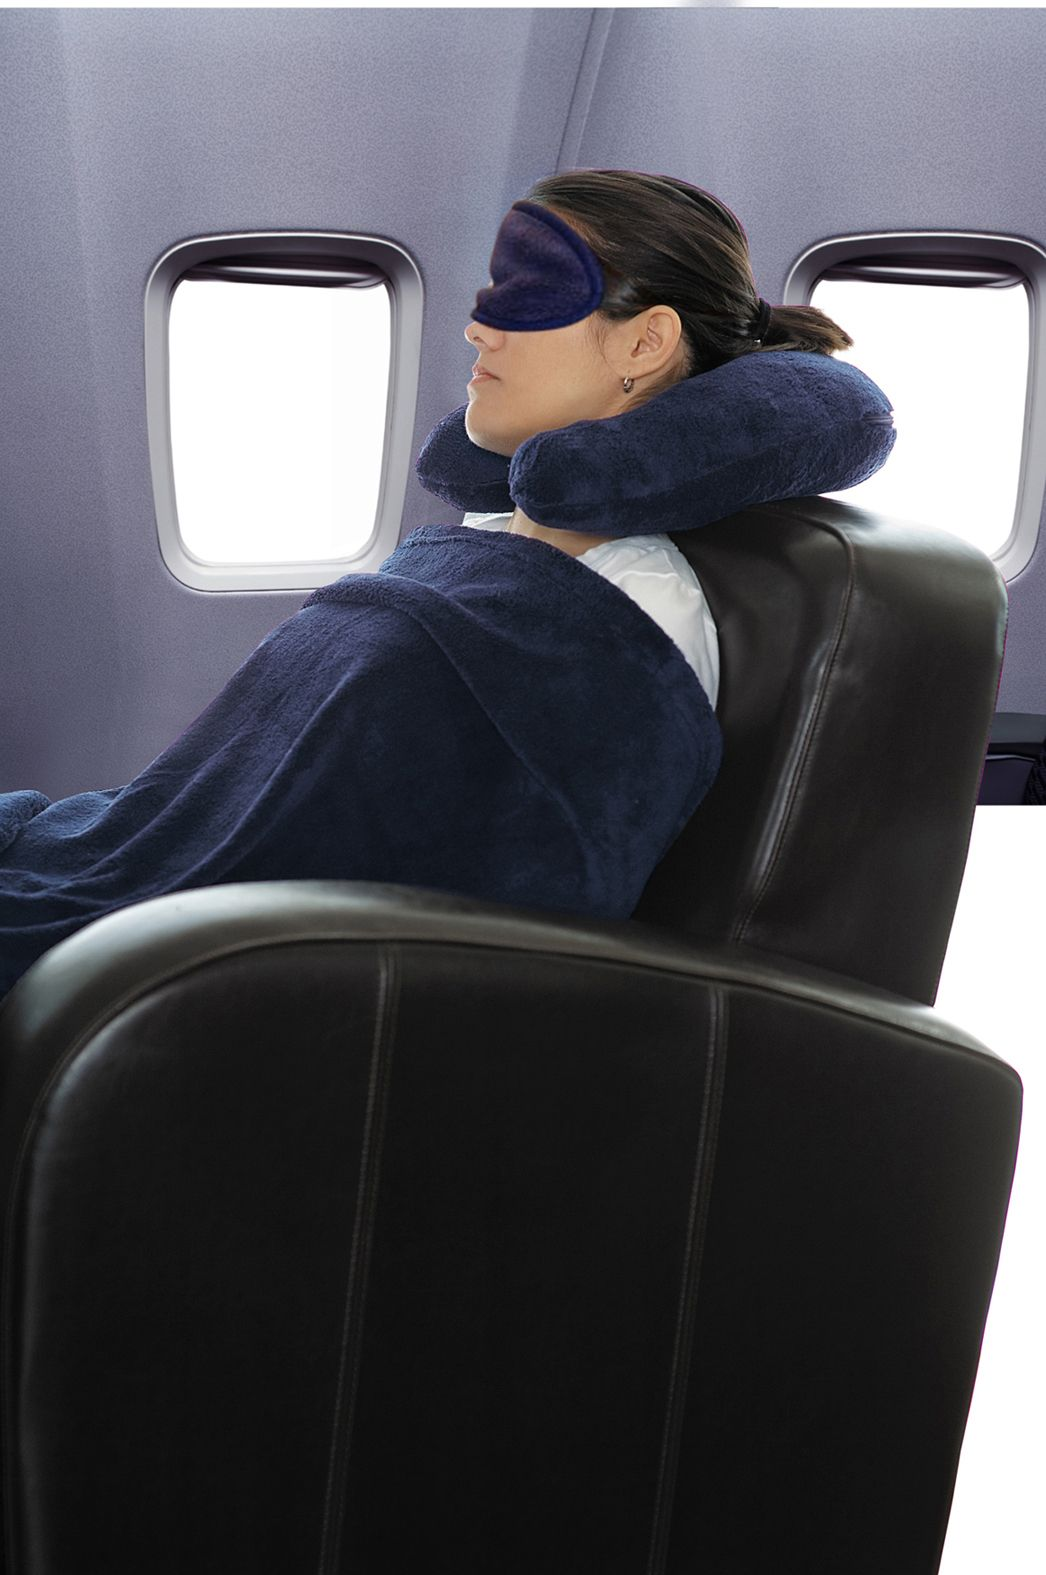 Making it easier to sleep while traveling this soft and comfortable